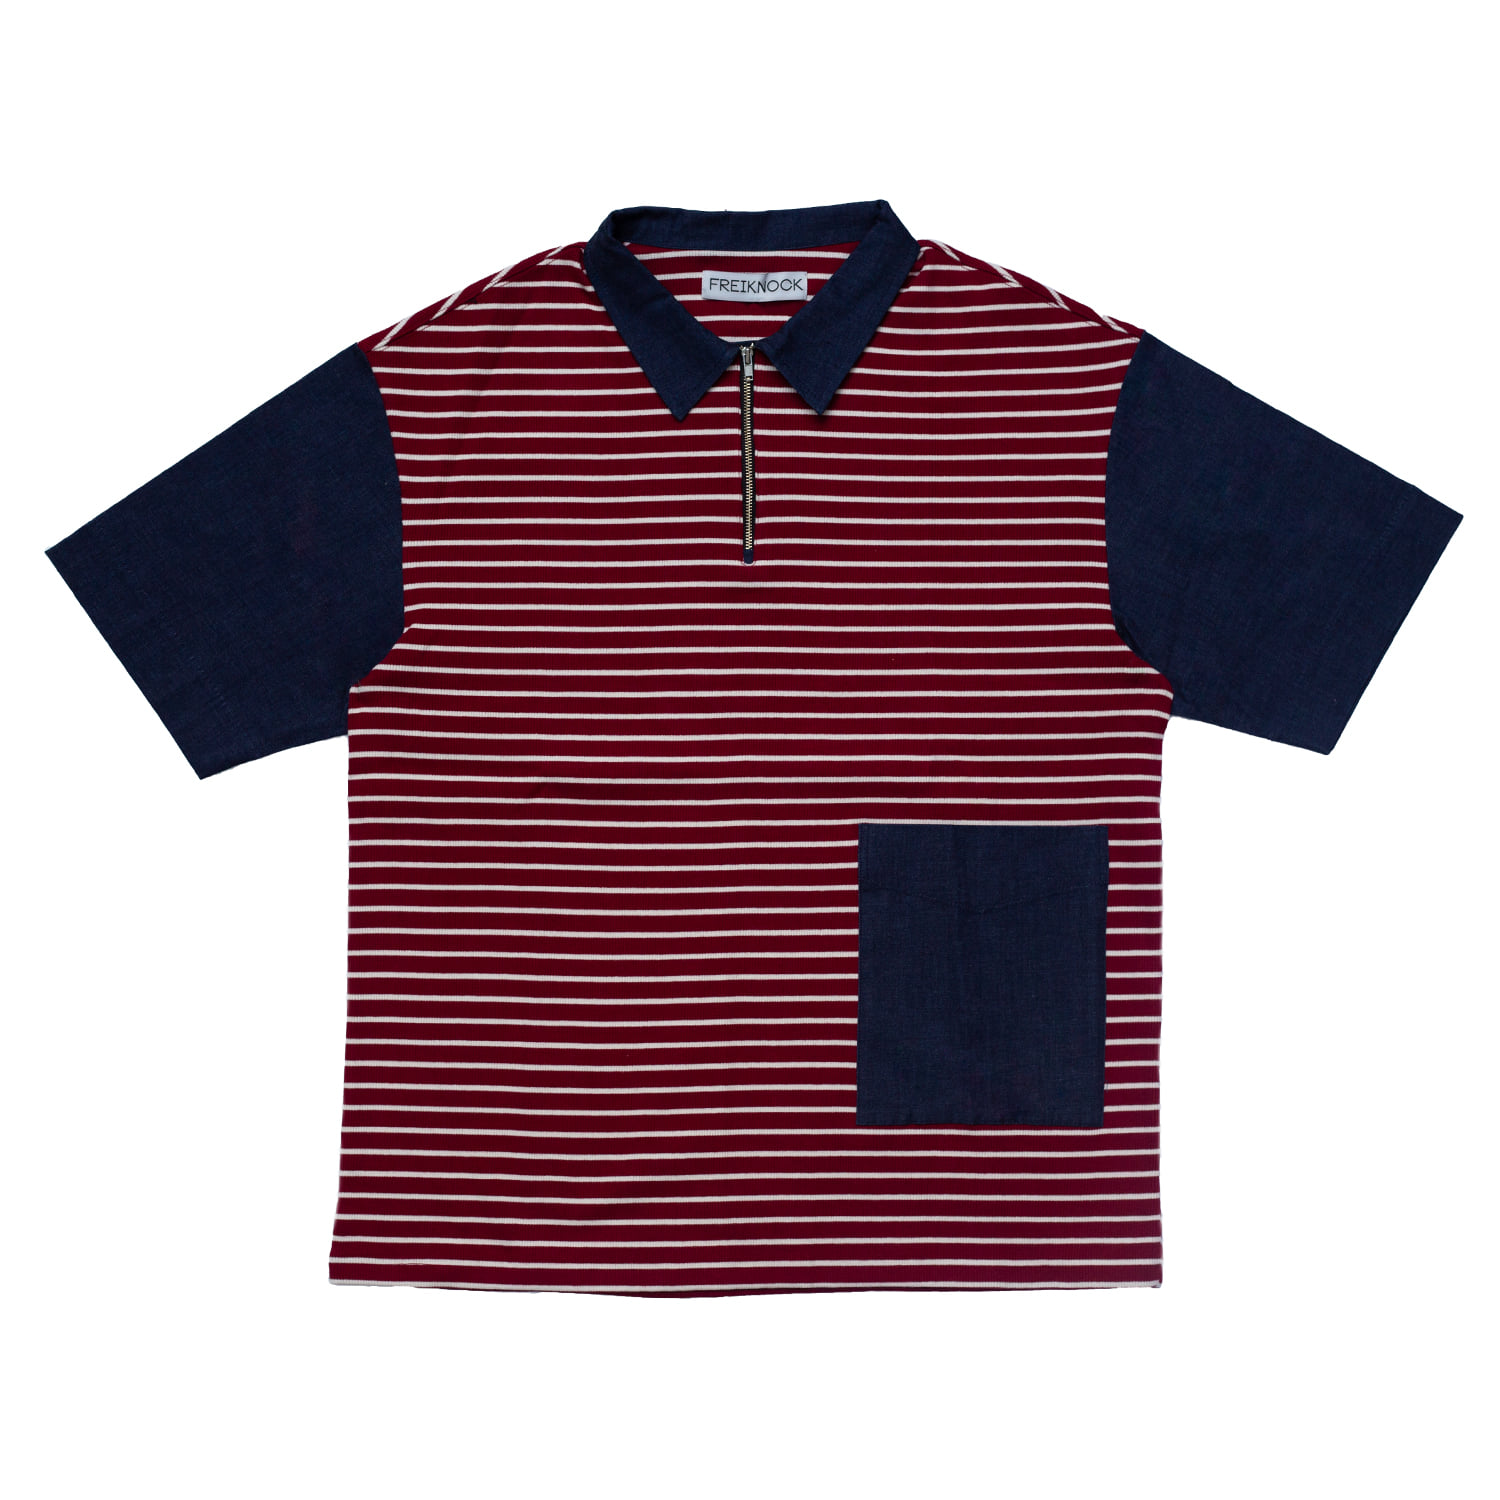 [80% OFF]DENIM & STRIPE JERSEY COMBO SHIRT(BURGUNDY)